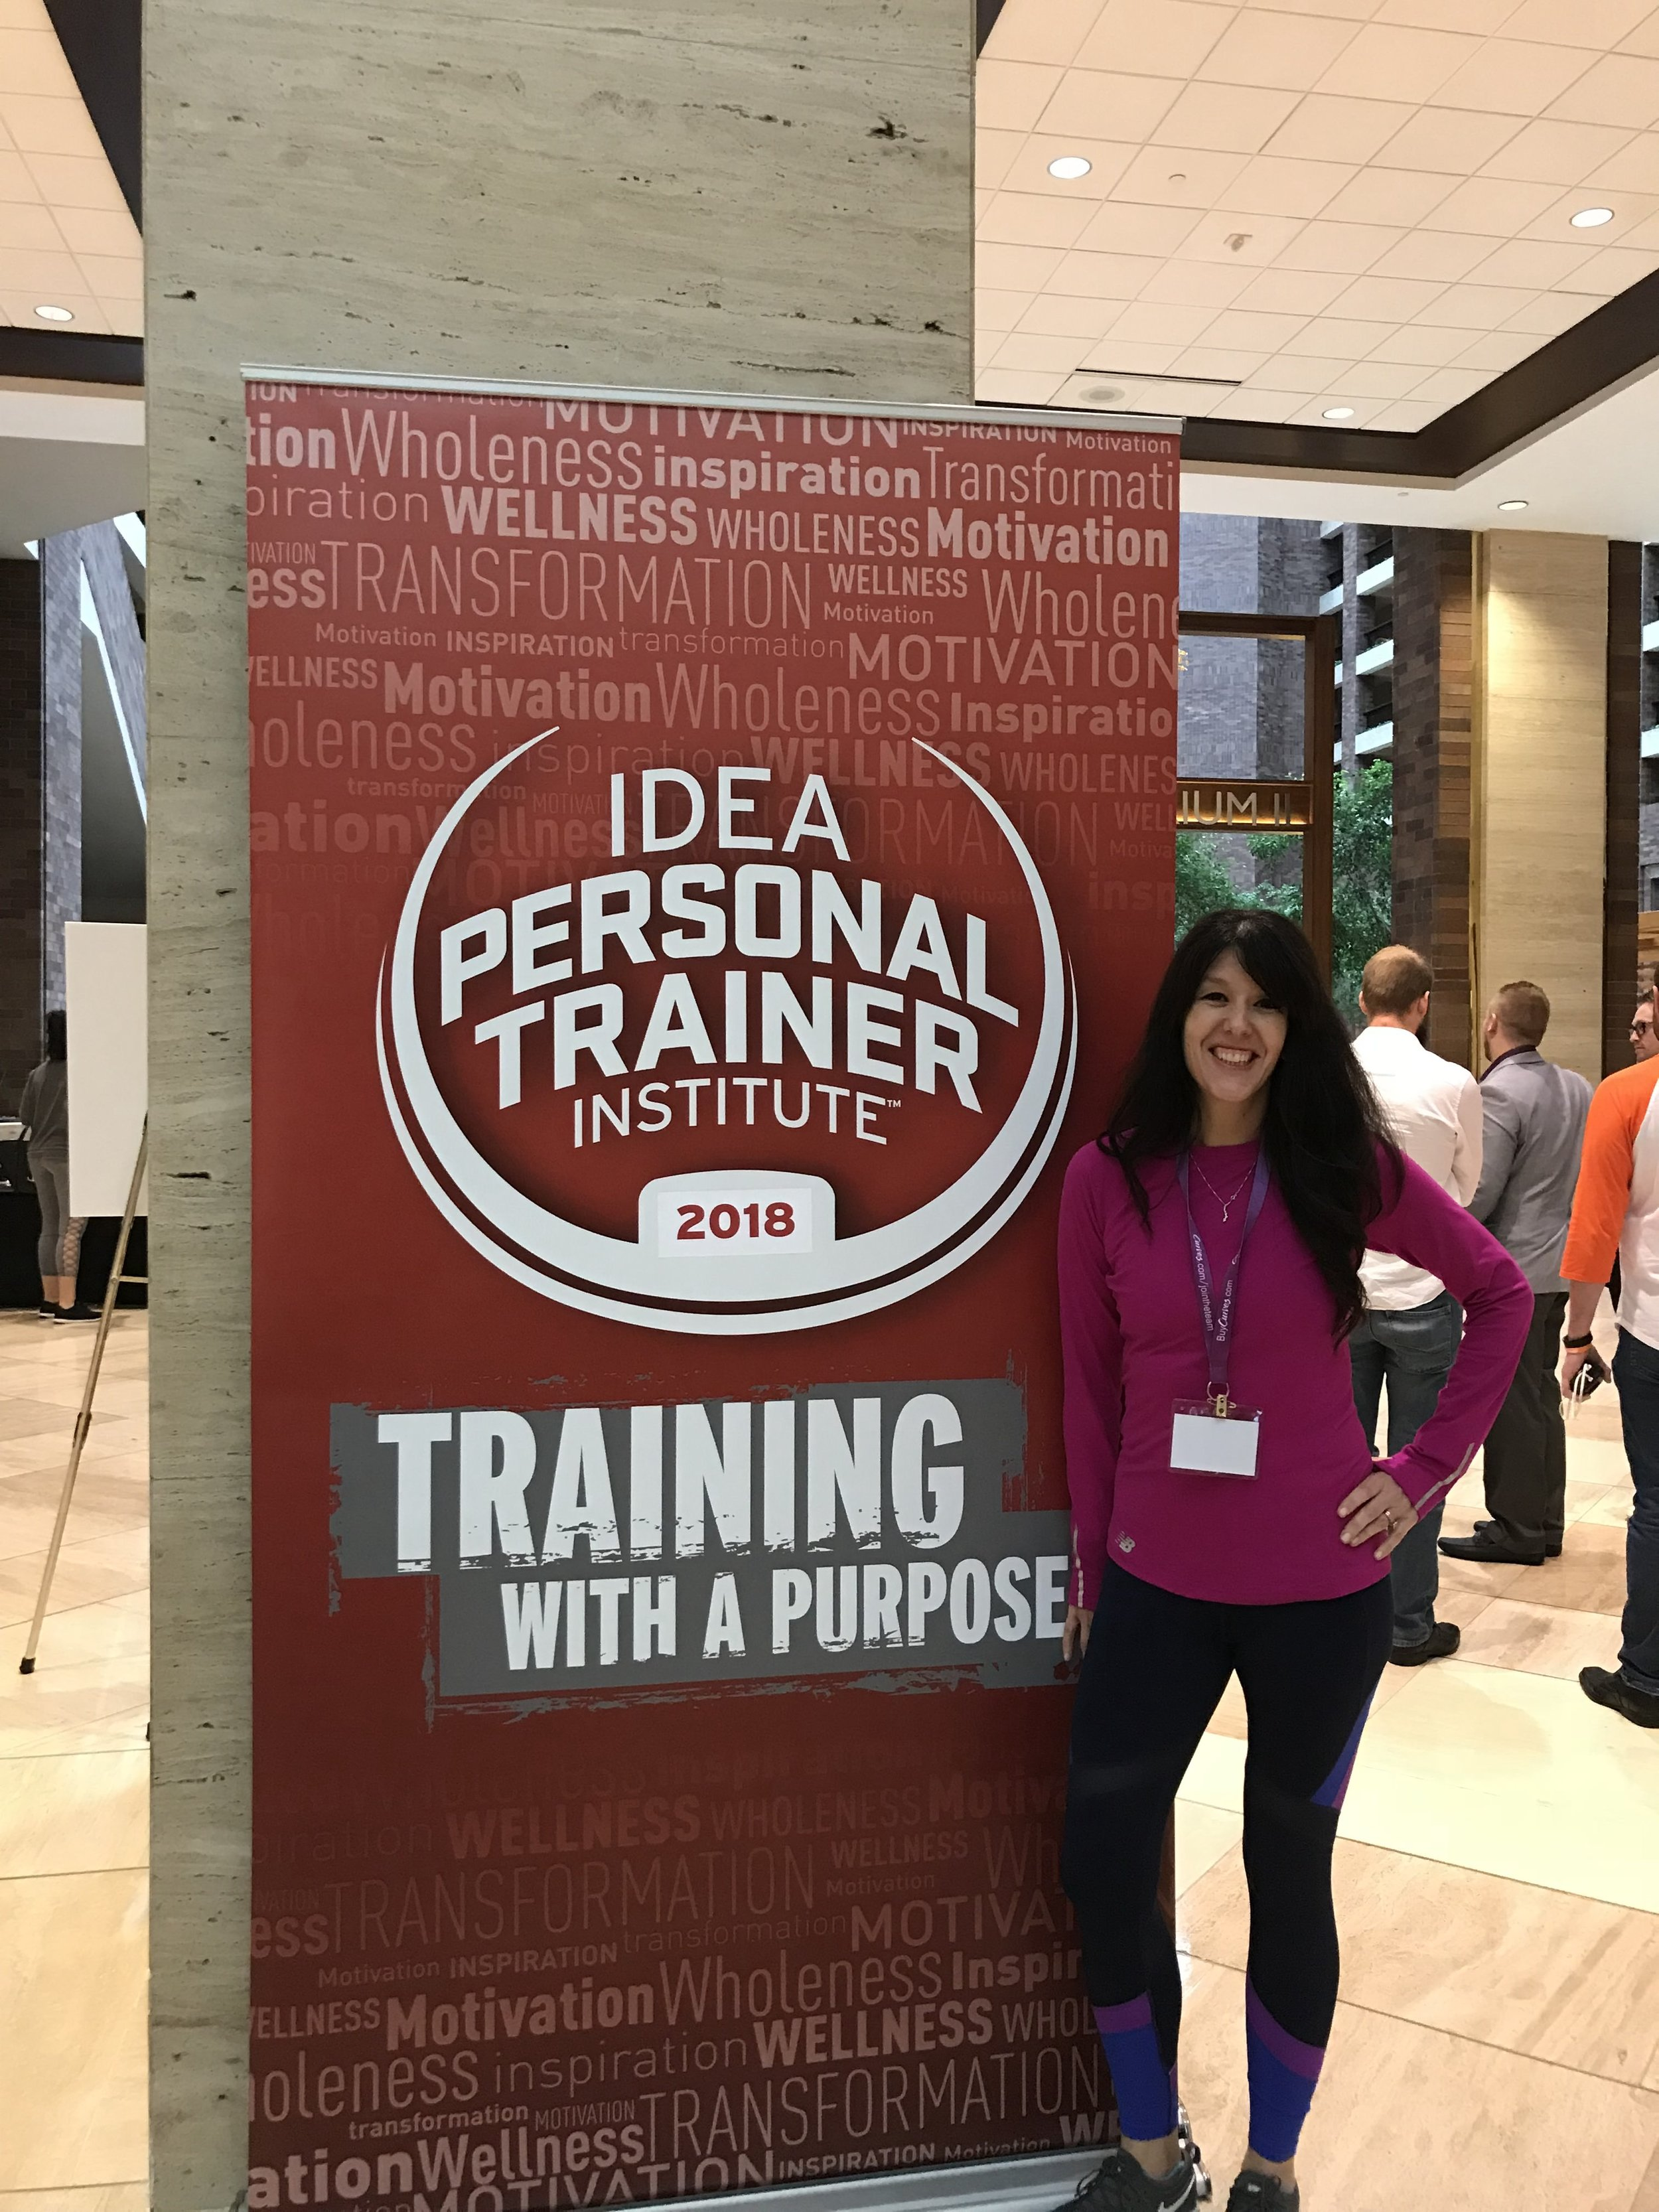 personal trainer's institute south